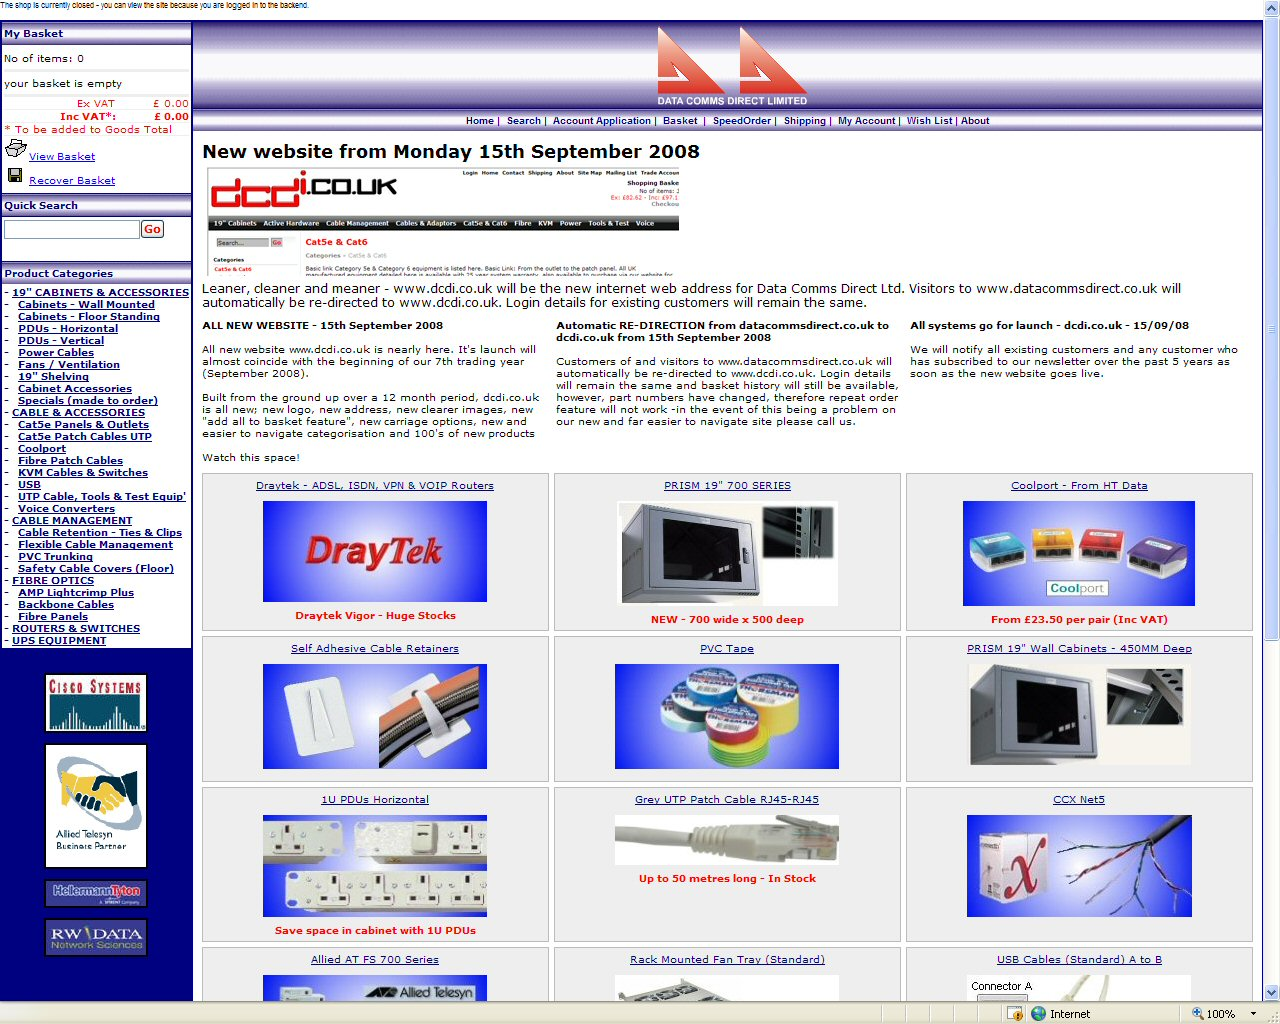 Data Comm Direct's website circa 2002 ...